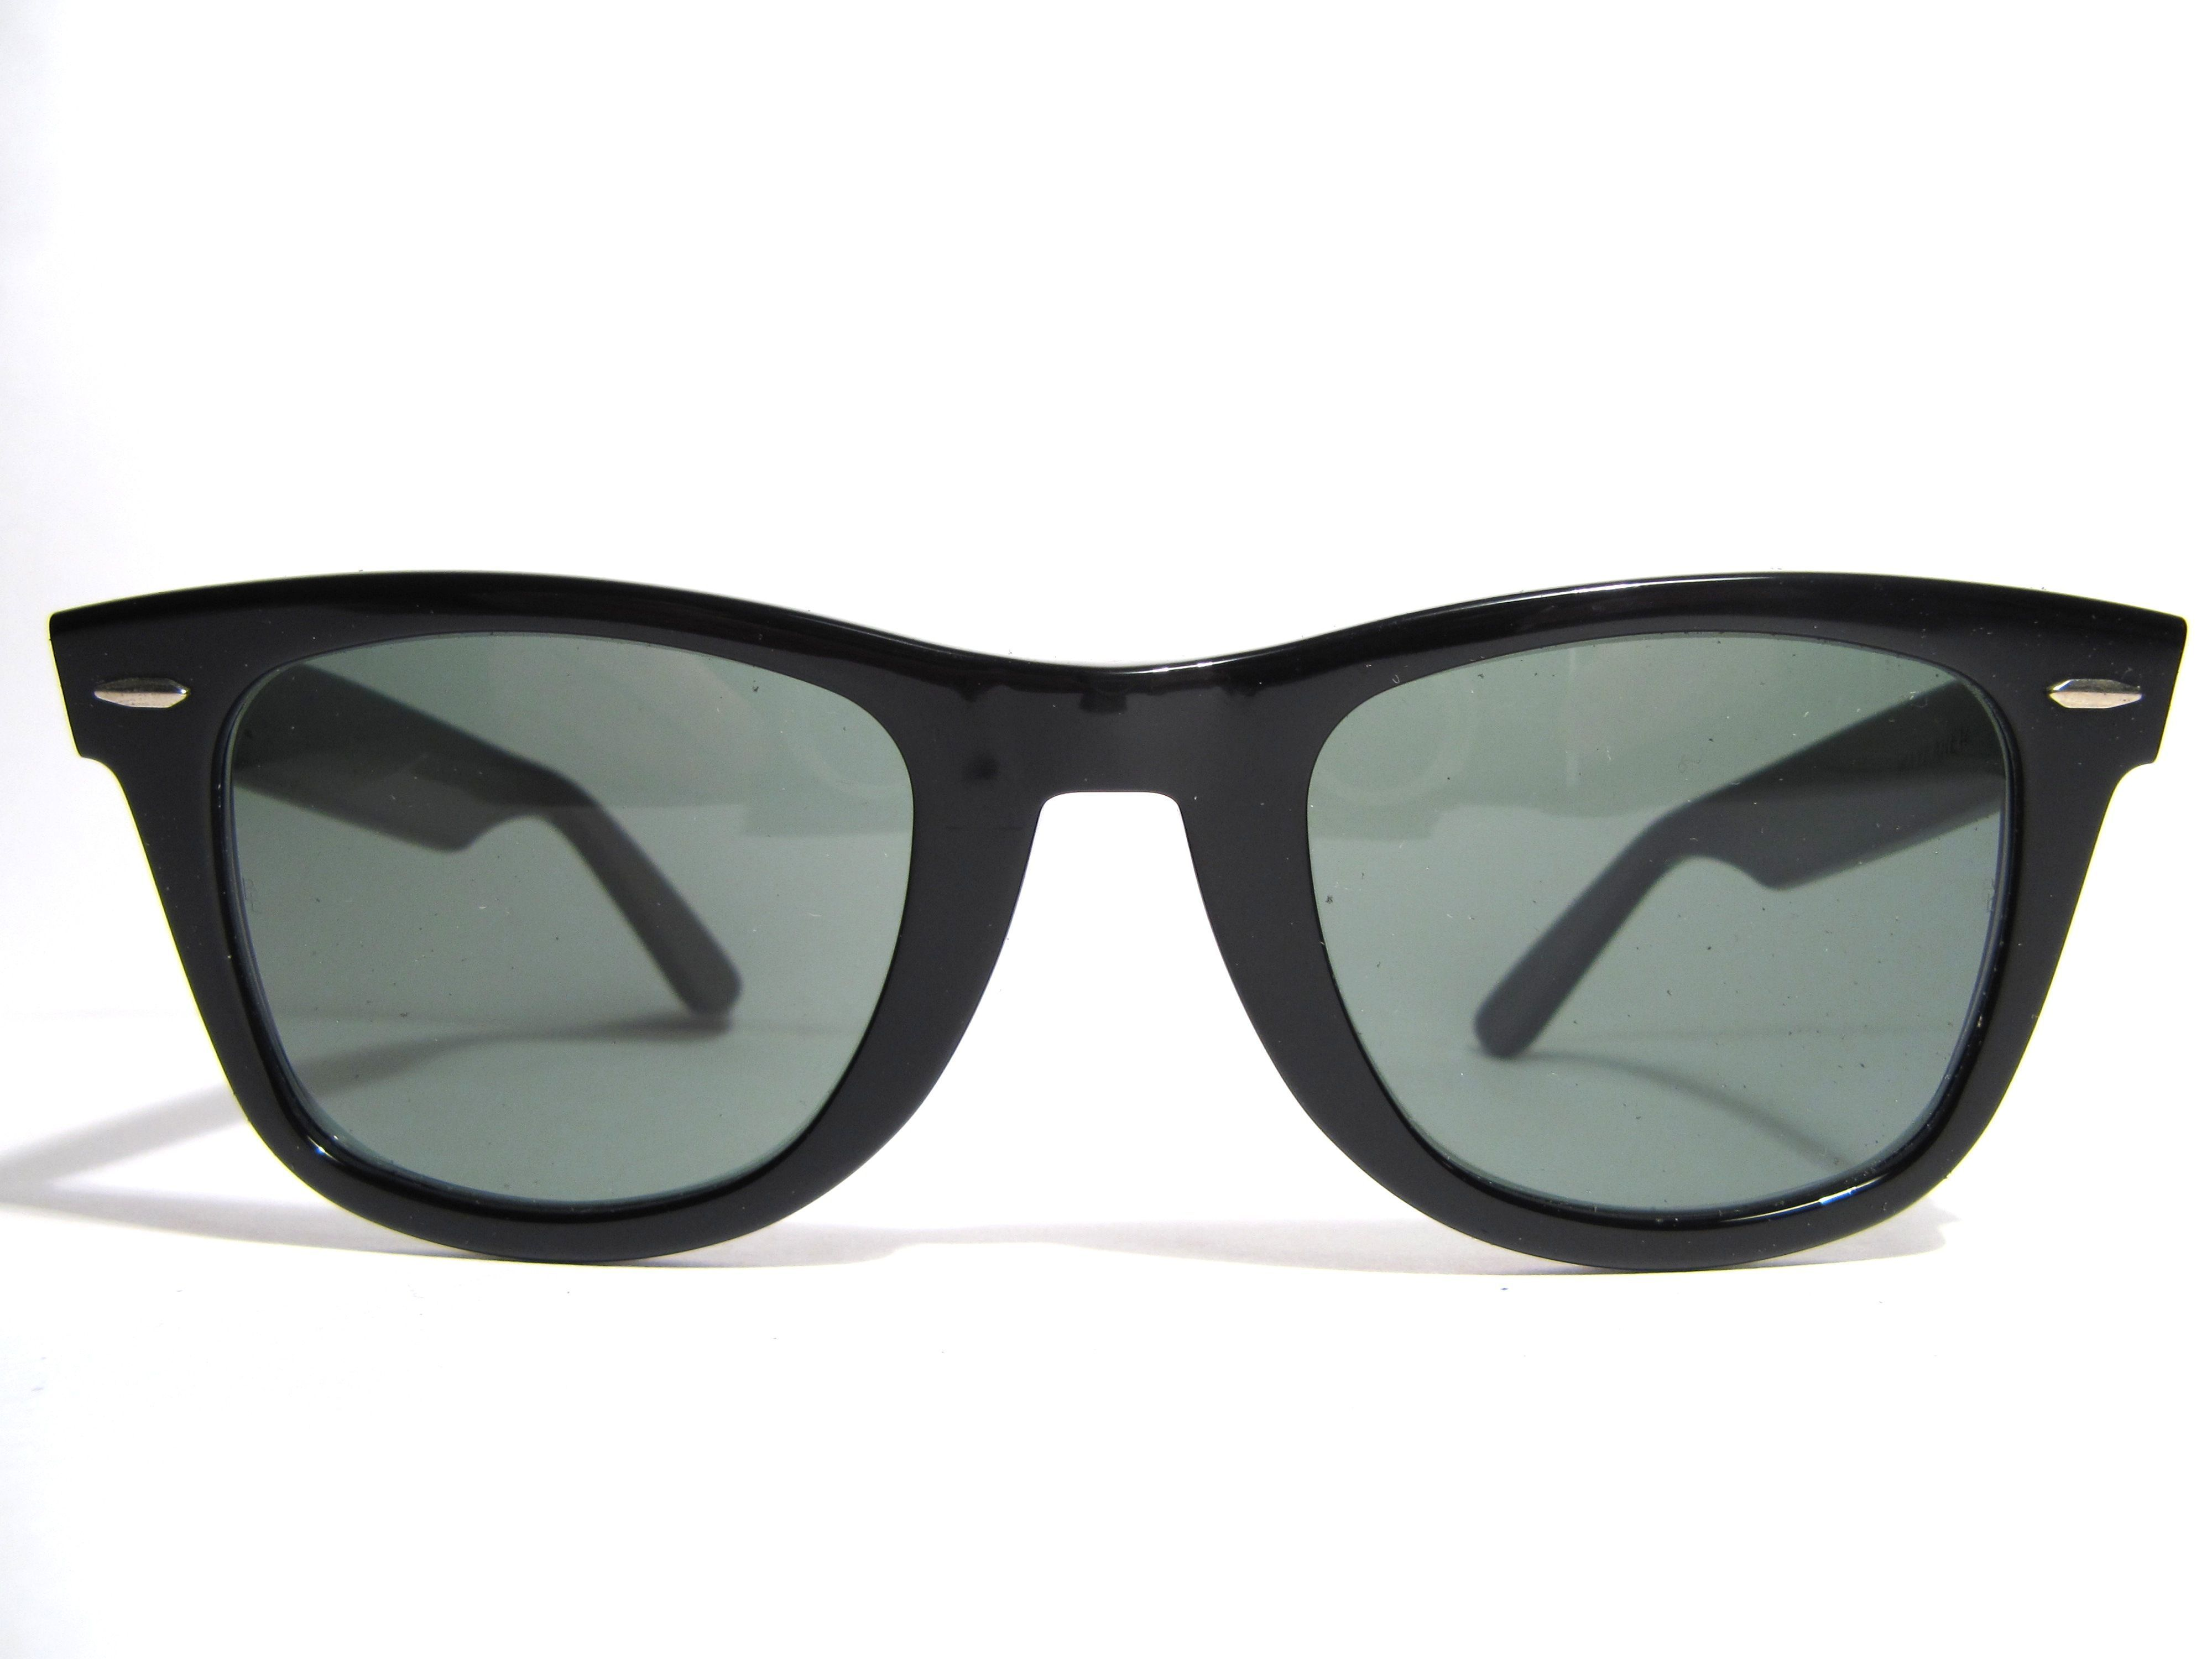 cce7548badd0 Black Ray-Ban sunglasses Erica style black ray ban sunglasses  perfect  condition no signs of wear. Selling on Merc as well Ray-Ban Accessories  Sunglasses   ...